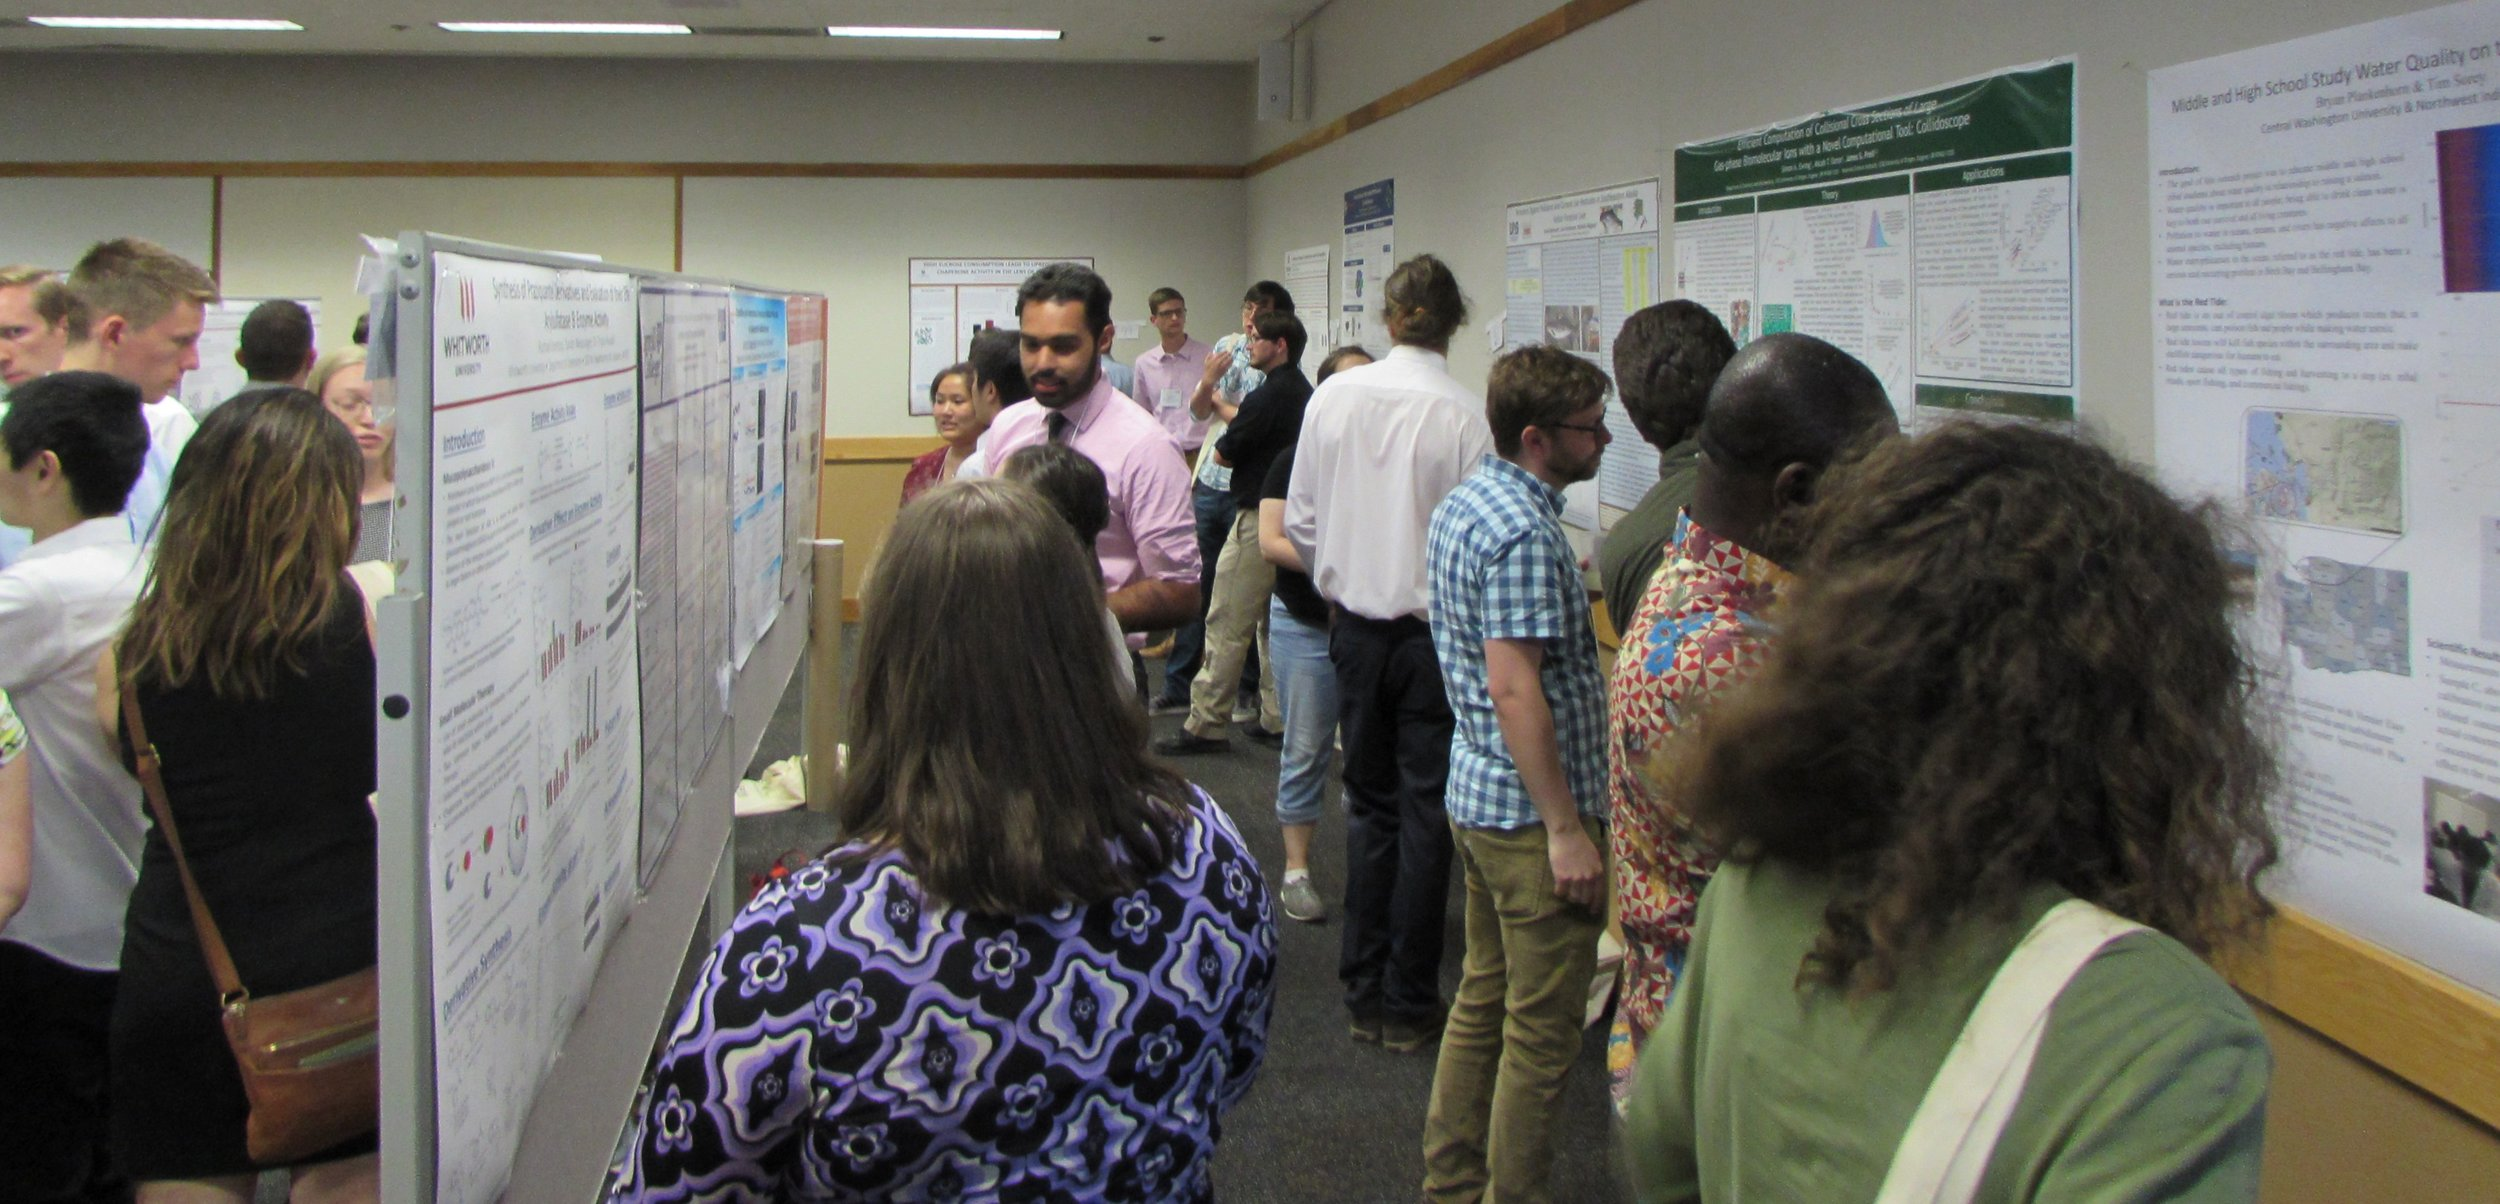 Sunday_PosterSession_NORM2017_11.jpg